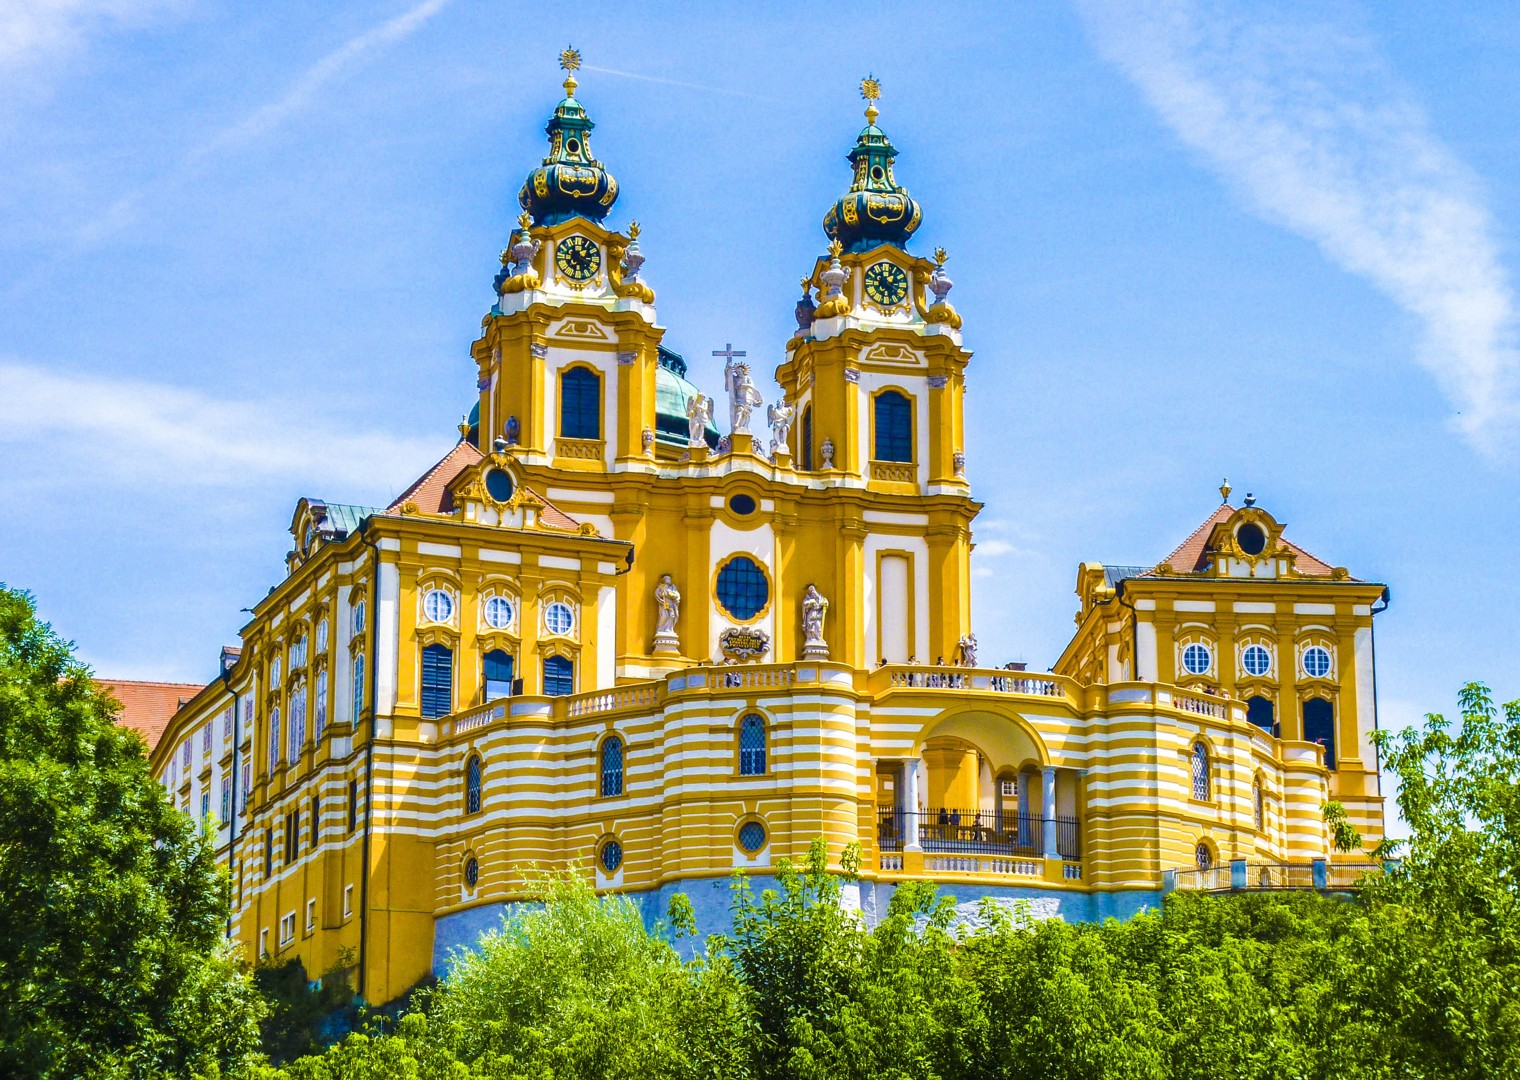 melk-abbey-danube-austria-bike-tour.jpg - Germany and Austria - The Danube Cycle Path - Supported Leisure Cycling Holiday - Leisure Cycling